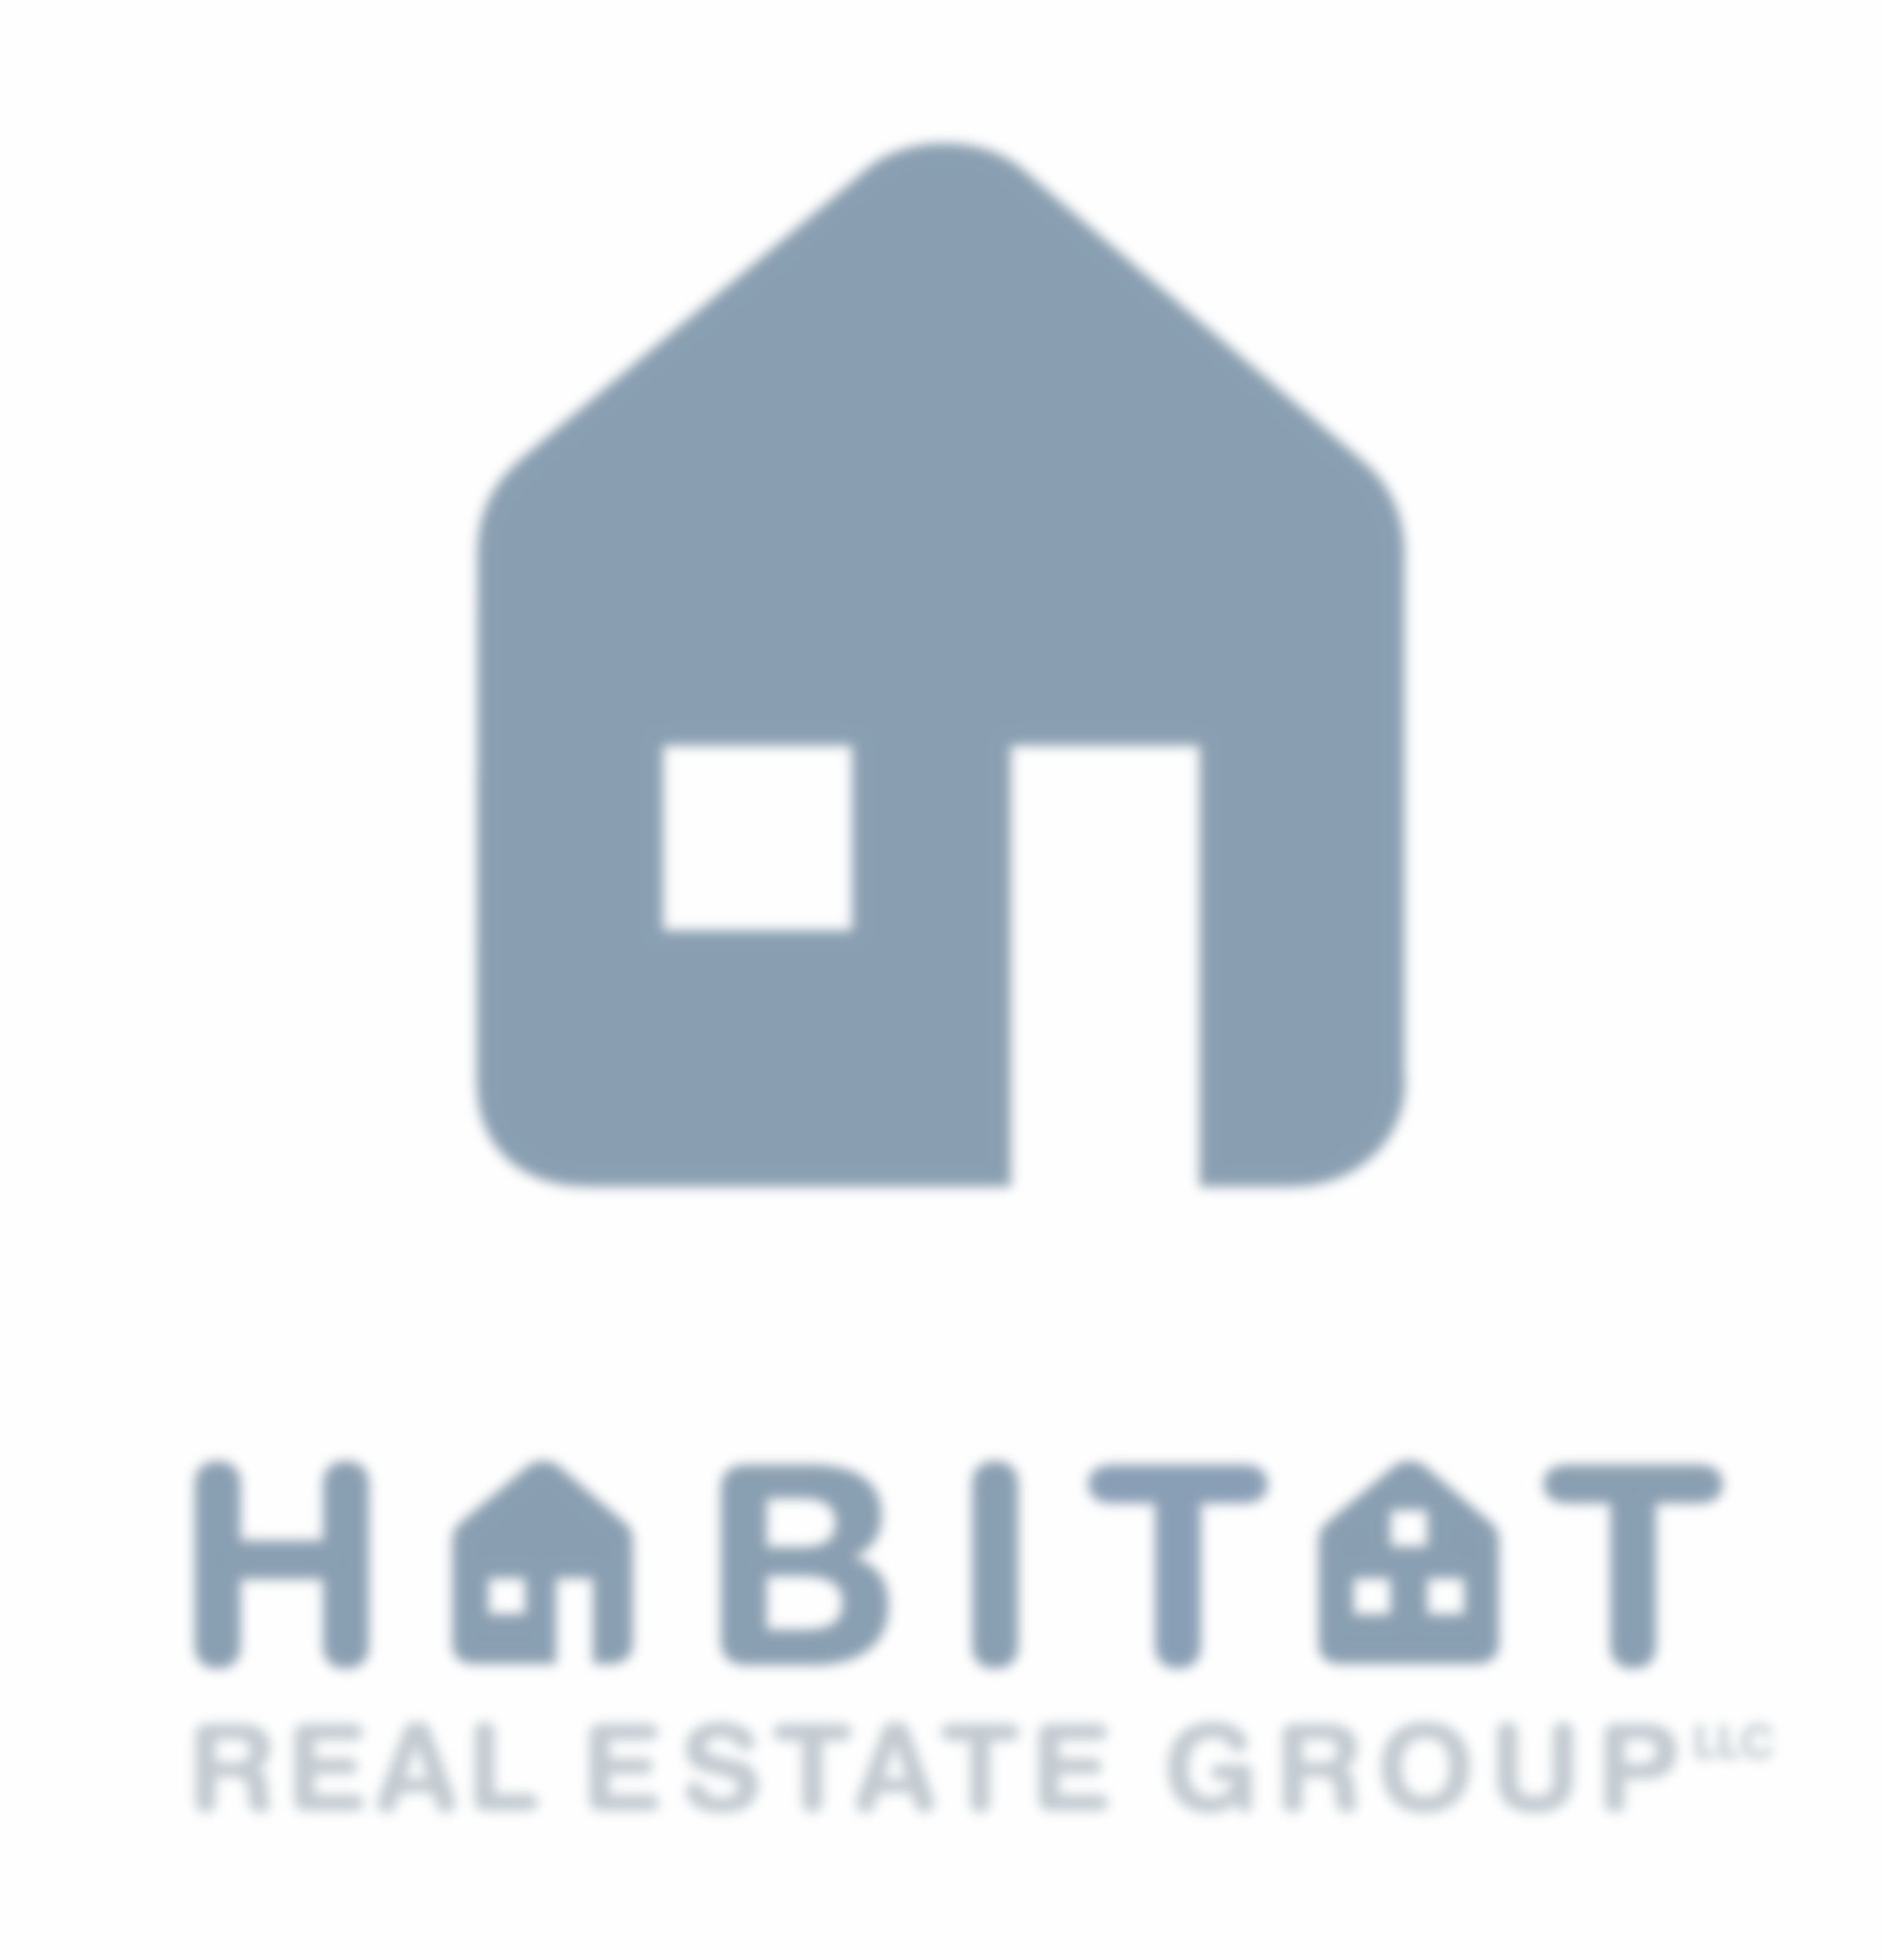 Habitat Real Estate Group